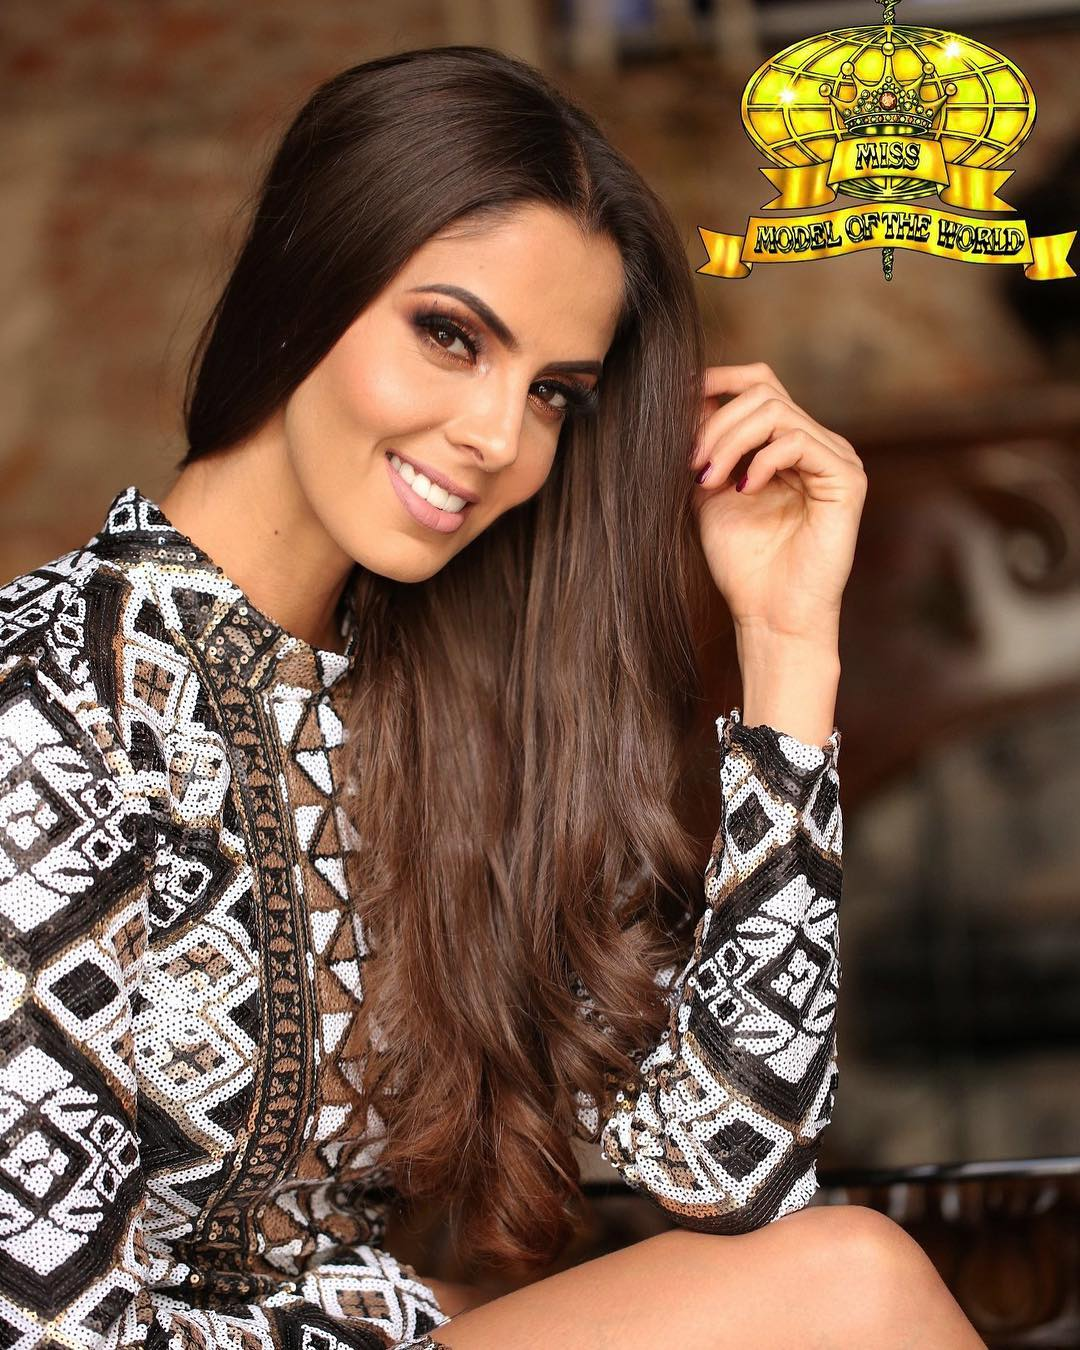 mariana berumen, top 36 de miss model of the world 2018/top 15 de miss world 2012 - Página 6 43913110